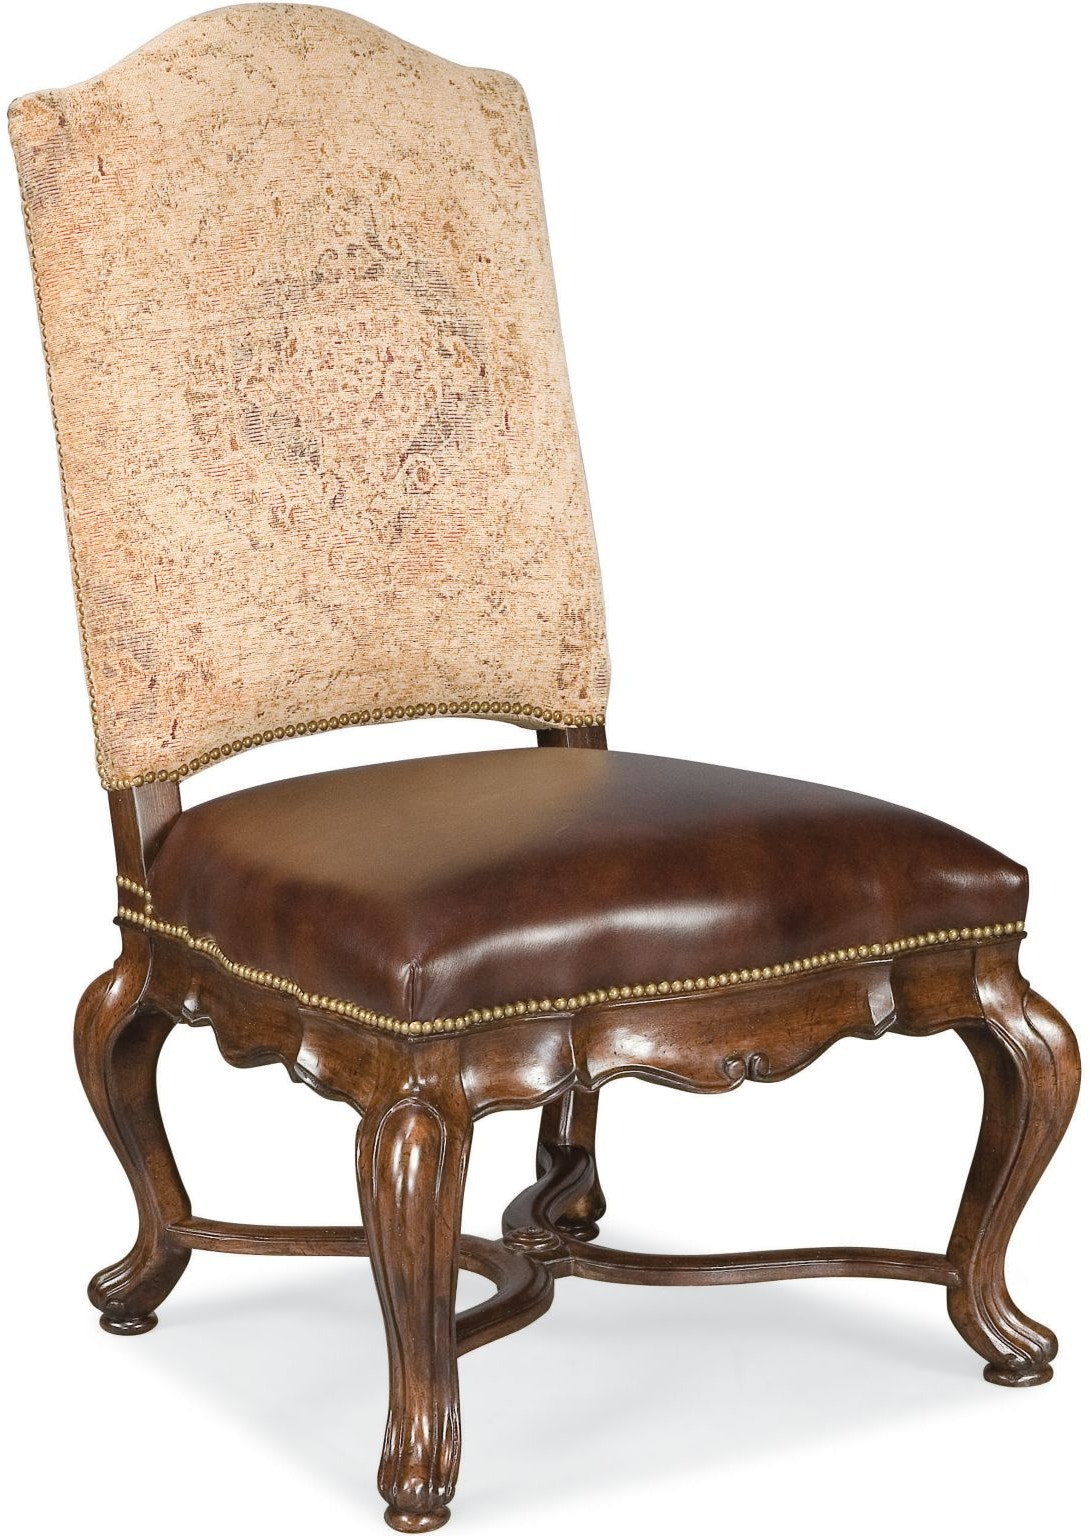 Thomasville Dining Room Bibbiano Upholstered Side Chair  : 43622 881 from www.lenoirempirefurniture.com size 1024 x 768 jpeg 47kB